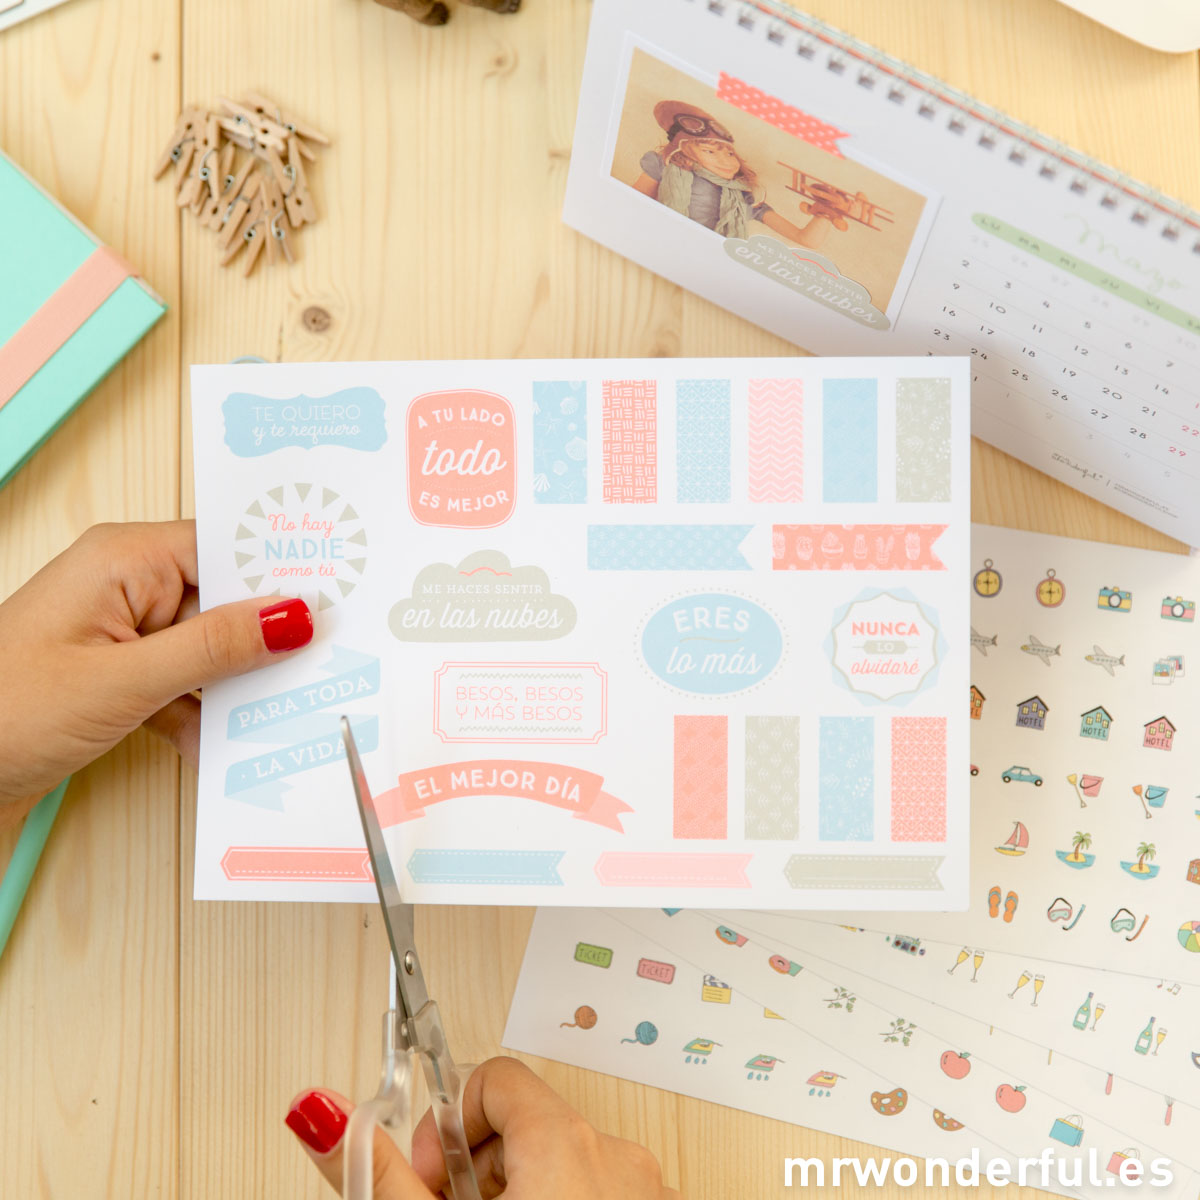 mrwonderful_WOA02928_8436547193639_Calendario-scrap-2015-2016-53